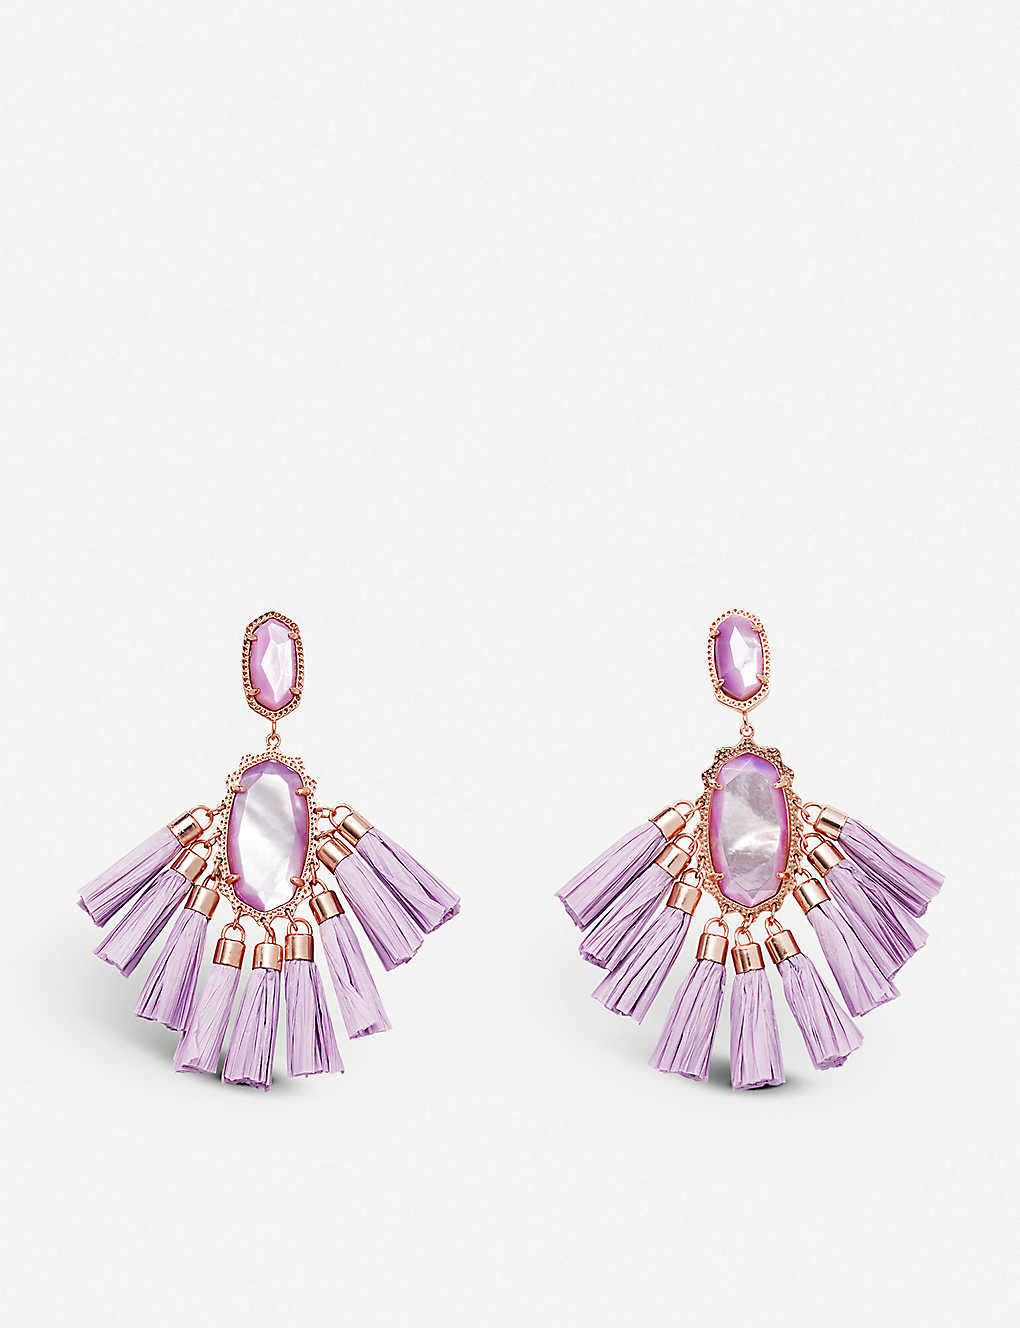 740e30049a4e6 KENDRA SCOTT - Kristen 14ct rose gold-plated and mother-of-pearl ...